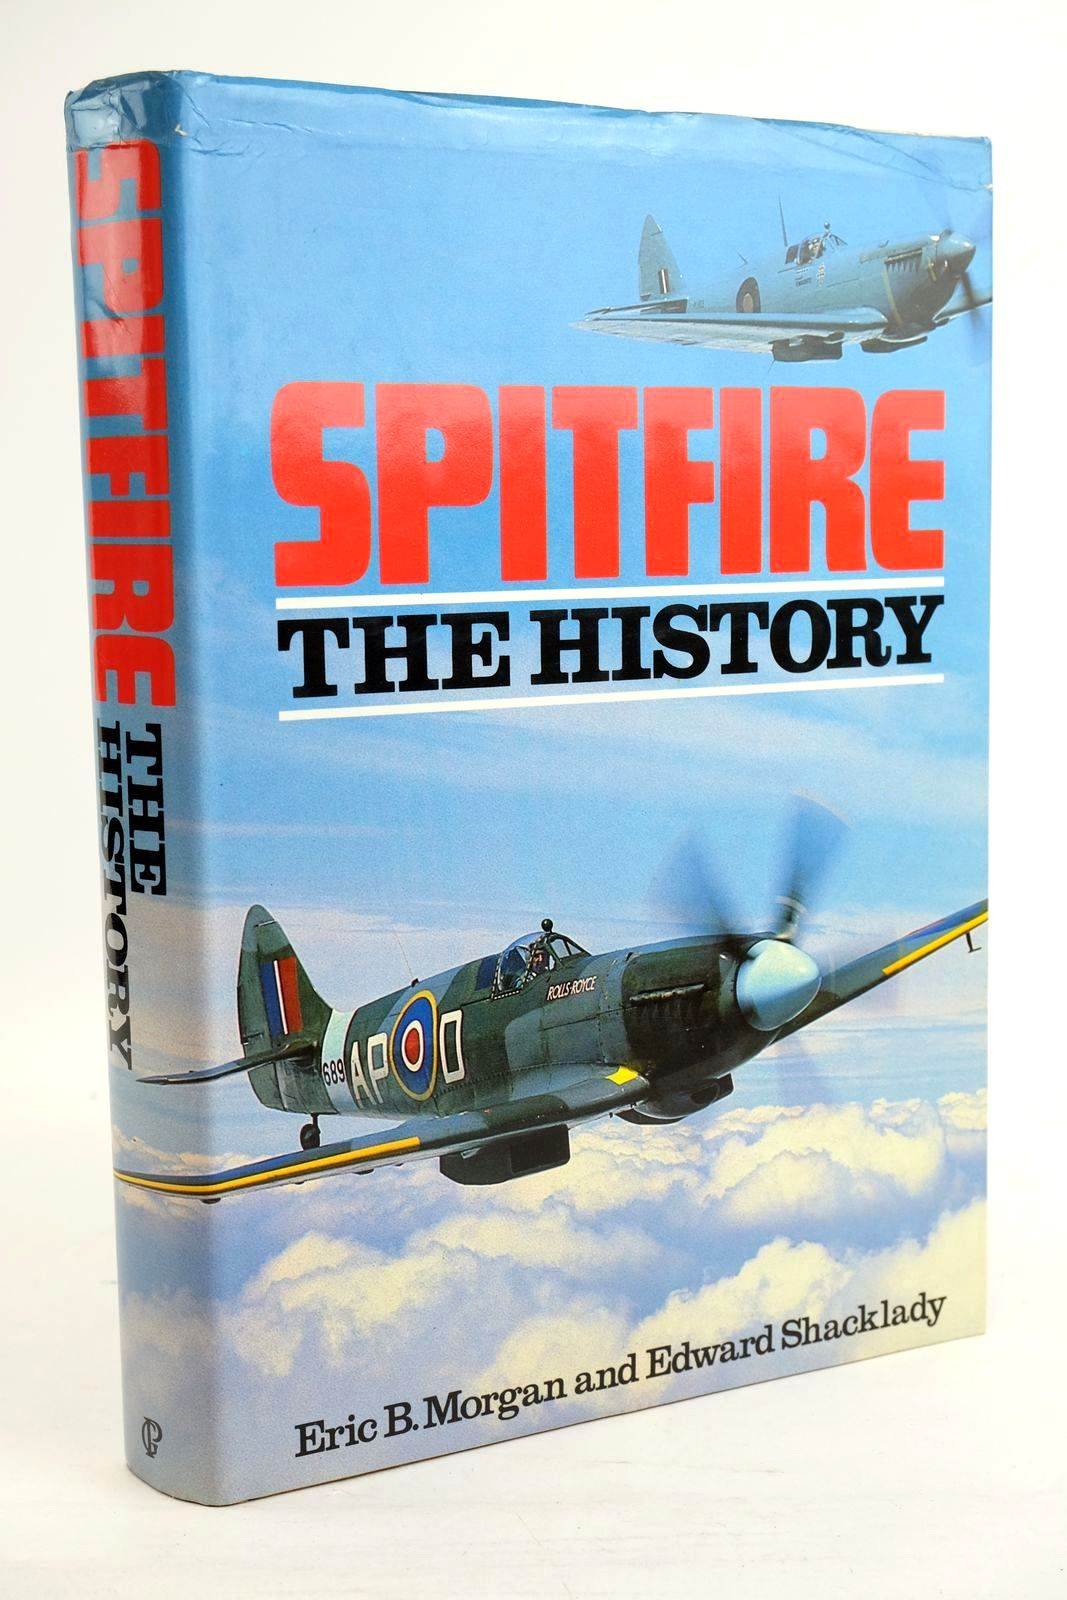 Photo of SPITFIRE THE HISTORY written by Morgan, Eric B. Shacklady, Edward published by Guild Publishing (STOCK CODE: 1320176)  for sale by Stella & Rose's Books